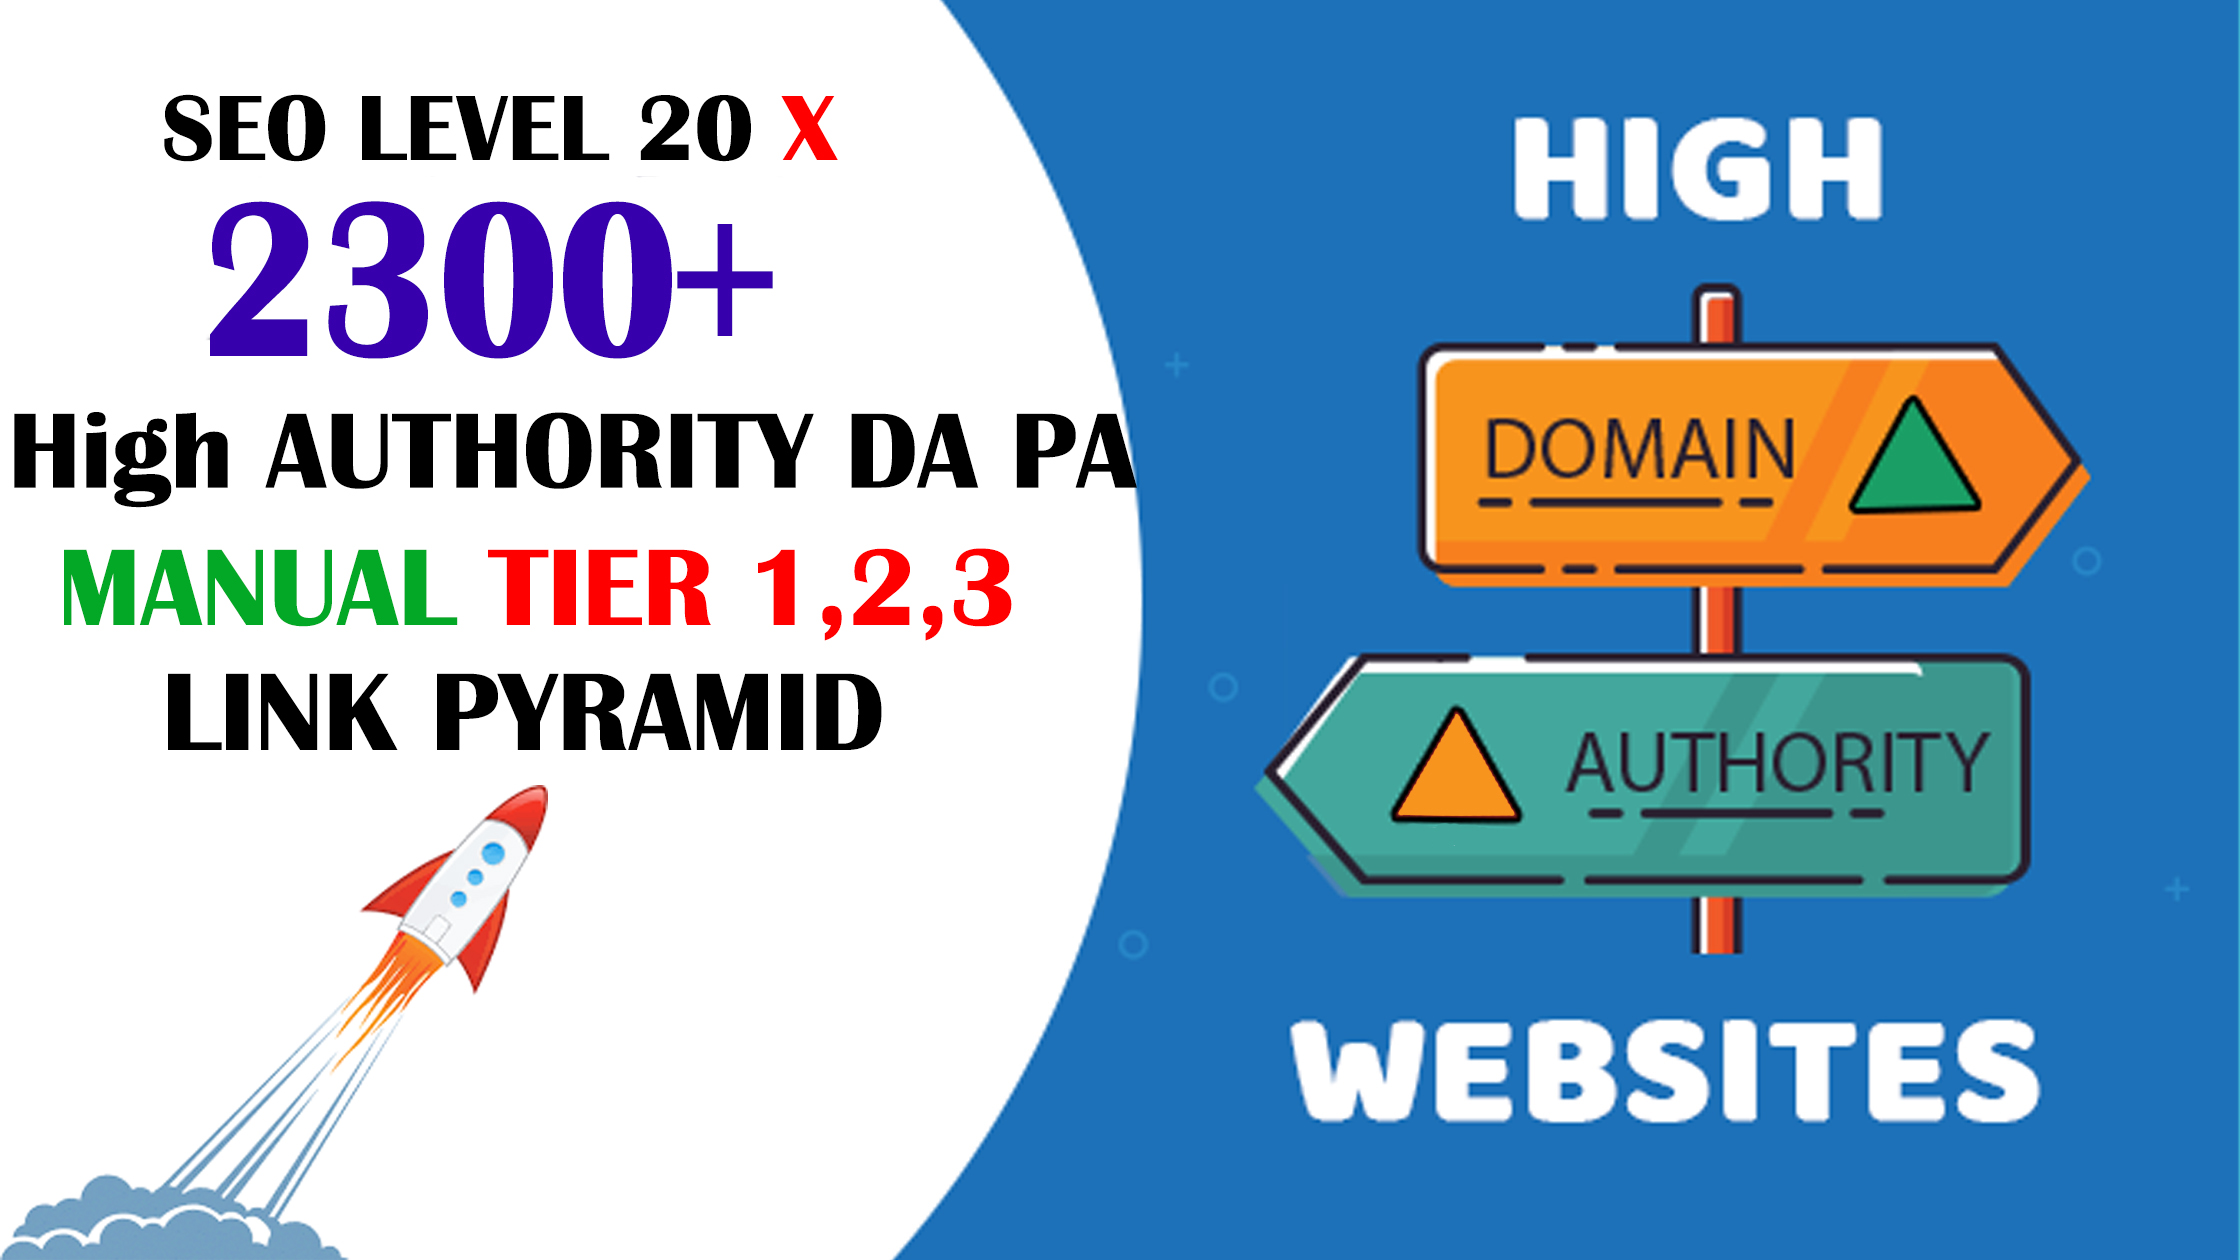 MEGA BACKLINKS PACKAGE - 2300+ HIGH DA PA Diversity Tired Link Building to Boost Your Google Ranking